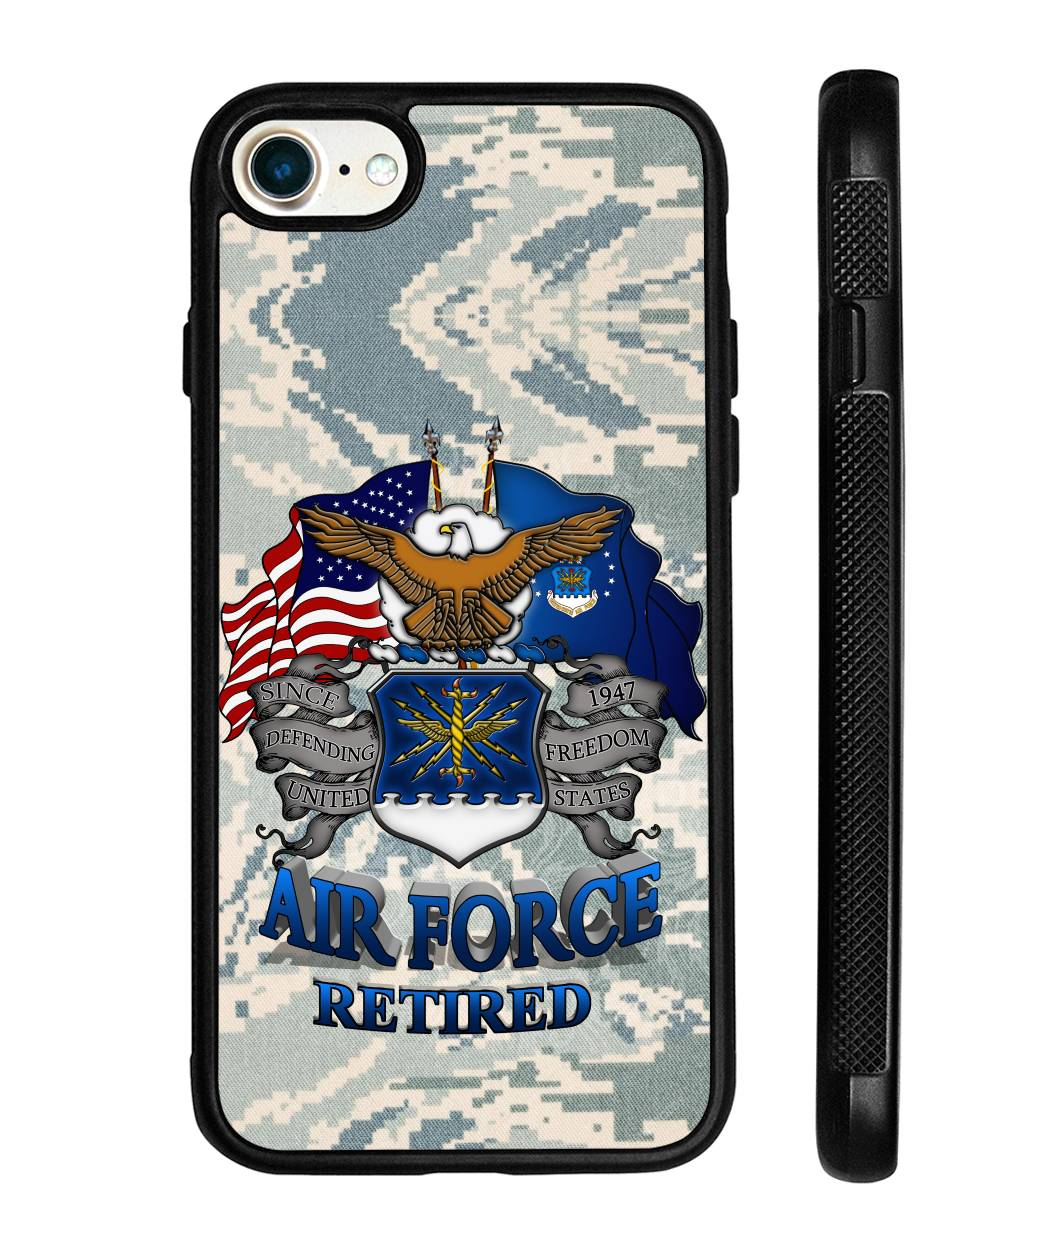 Air Force Retired iPhone cases